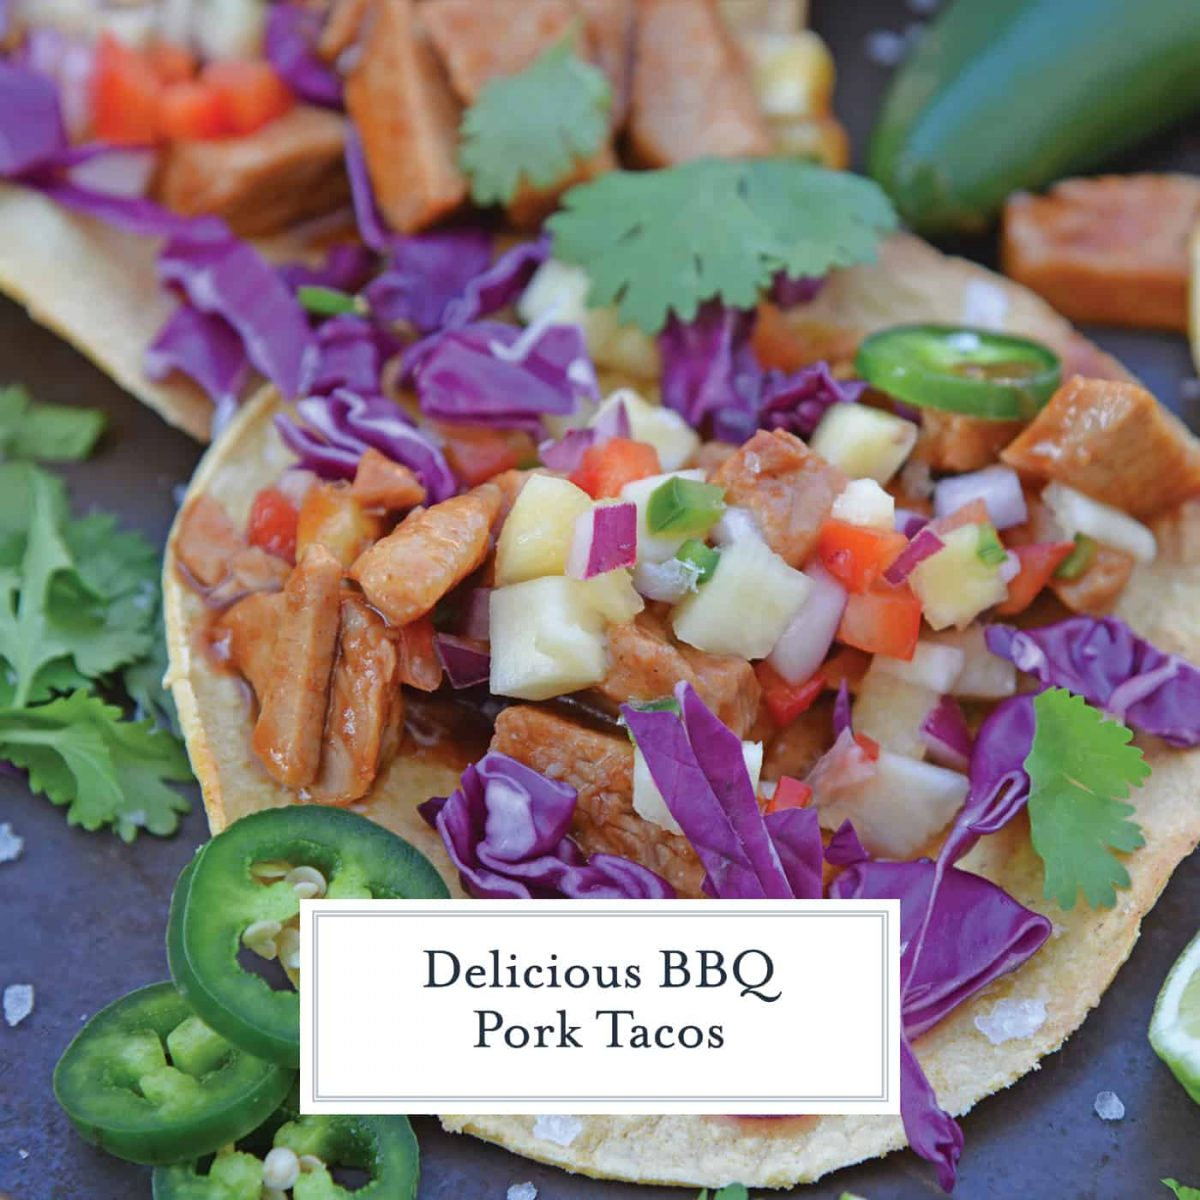 BBQ Pork Tacos are a colorful and easy weeknight dinner. Zesty BBQ sauce paired with sweet and spicy pineapple salsa and crunchy red cabbage. #porktacos #tacotuesday www.savoryexperiments.com